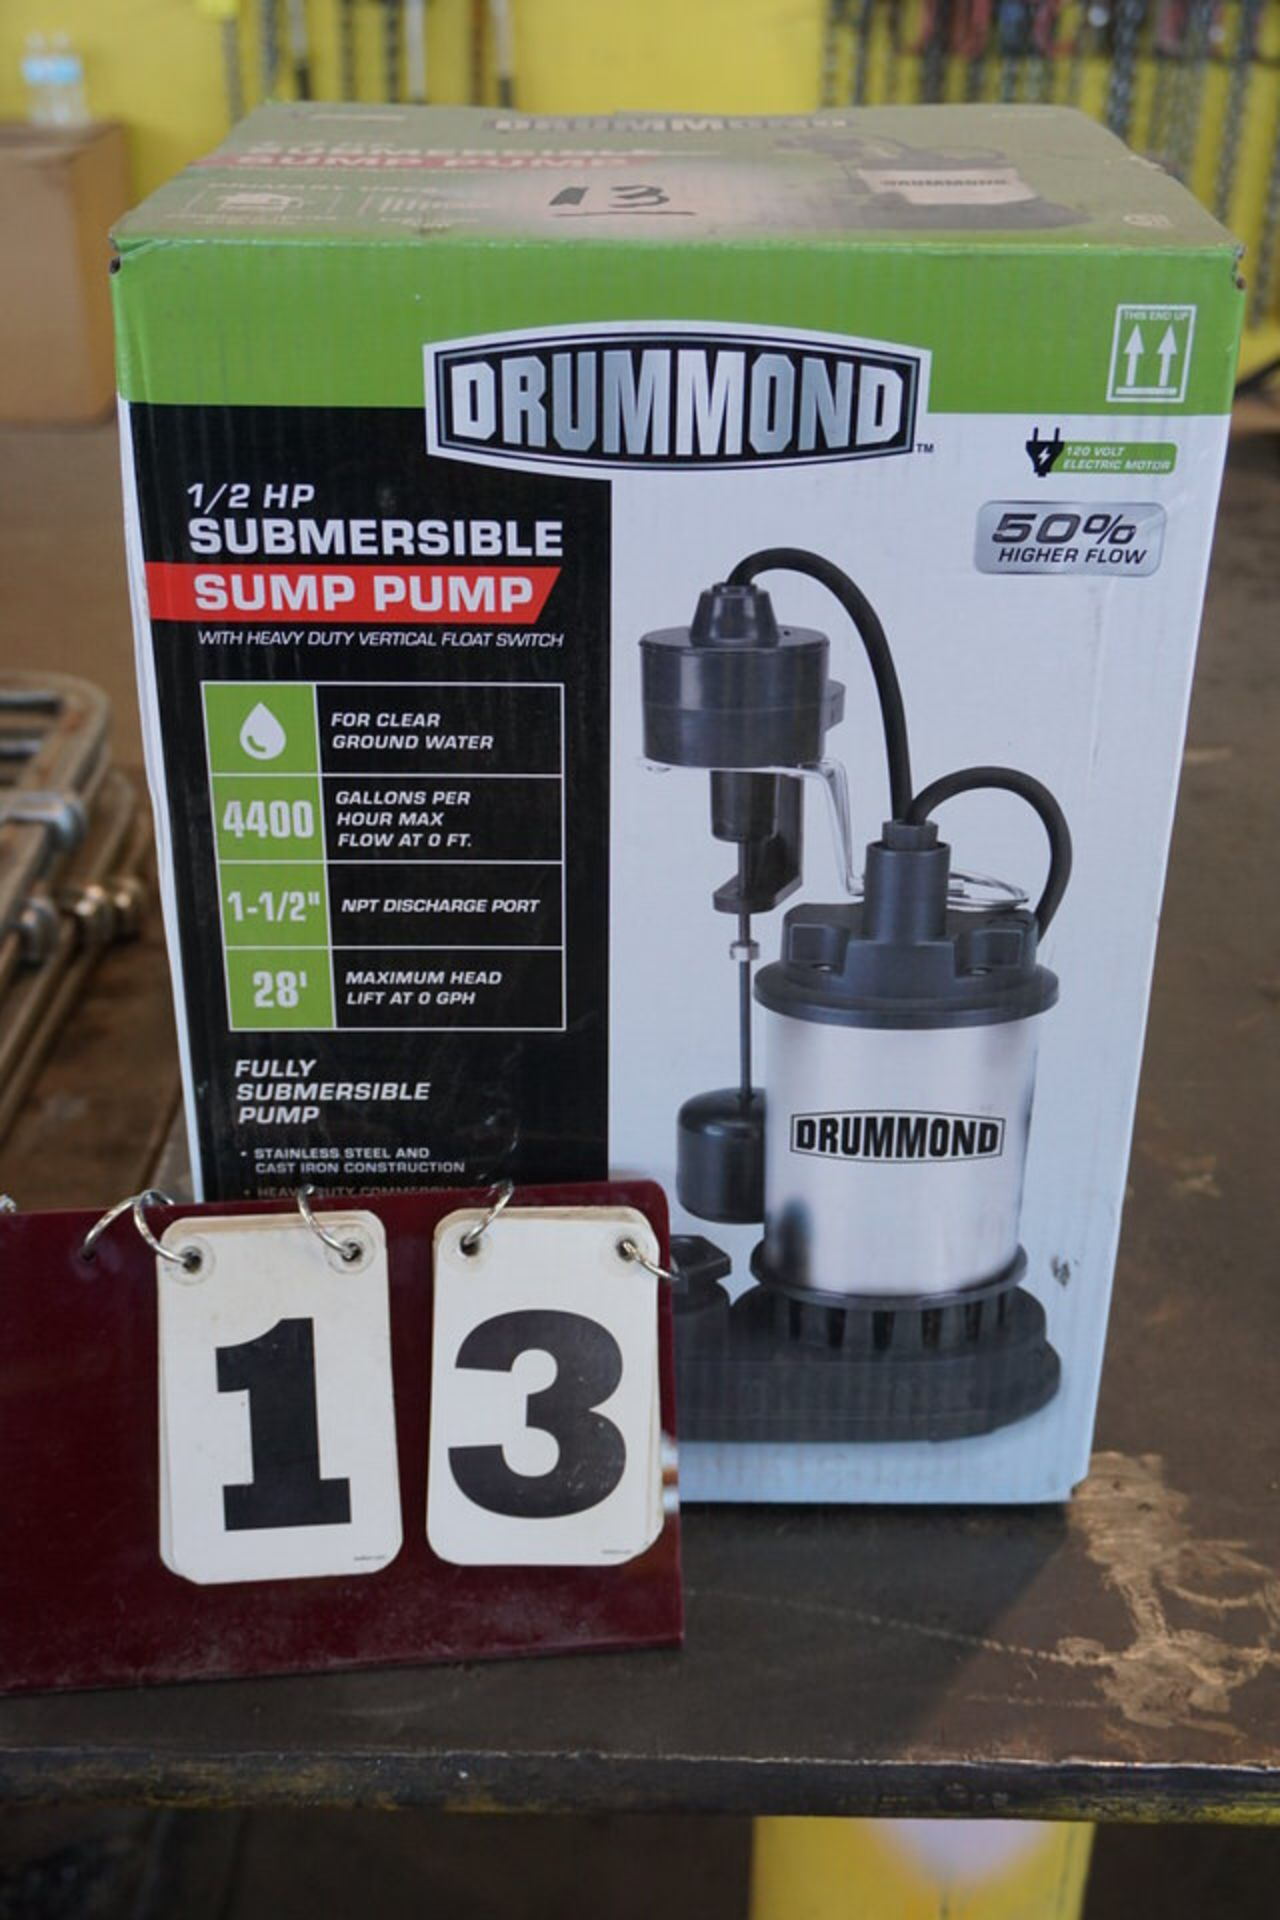 Lot 13 - DRUMMOND 1/2 HP SUBMERSIBLE PUMP